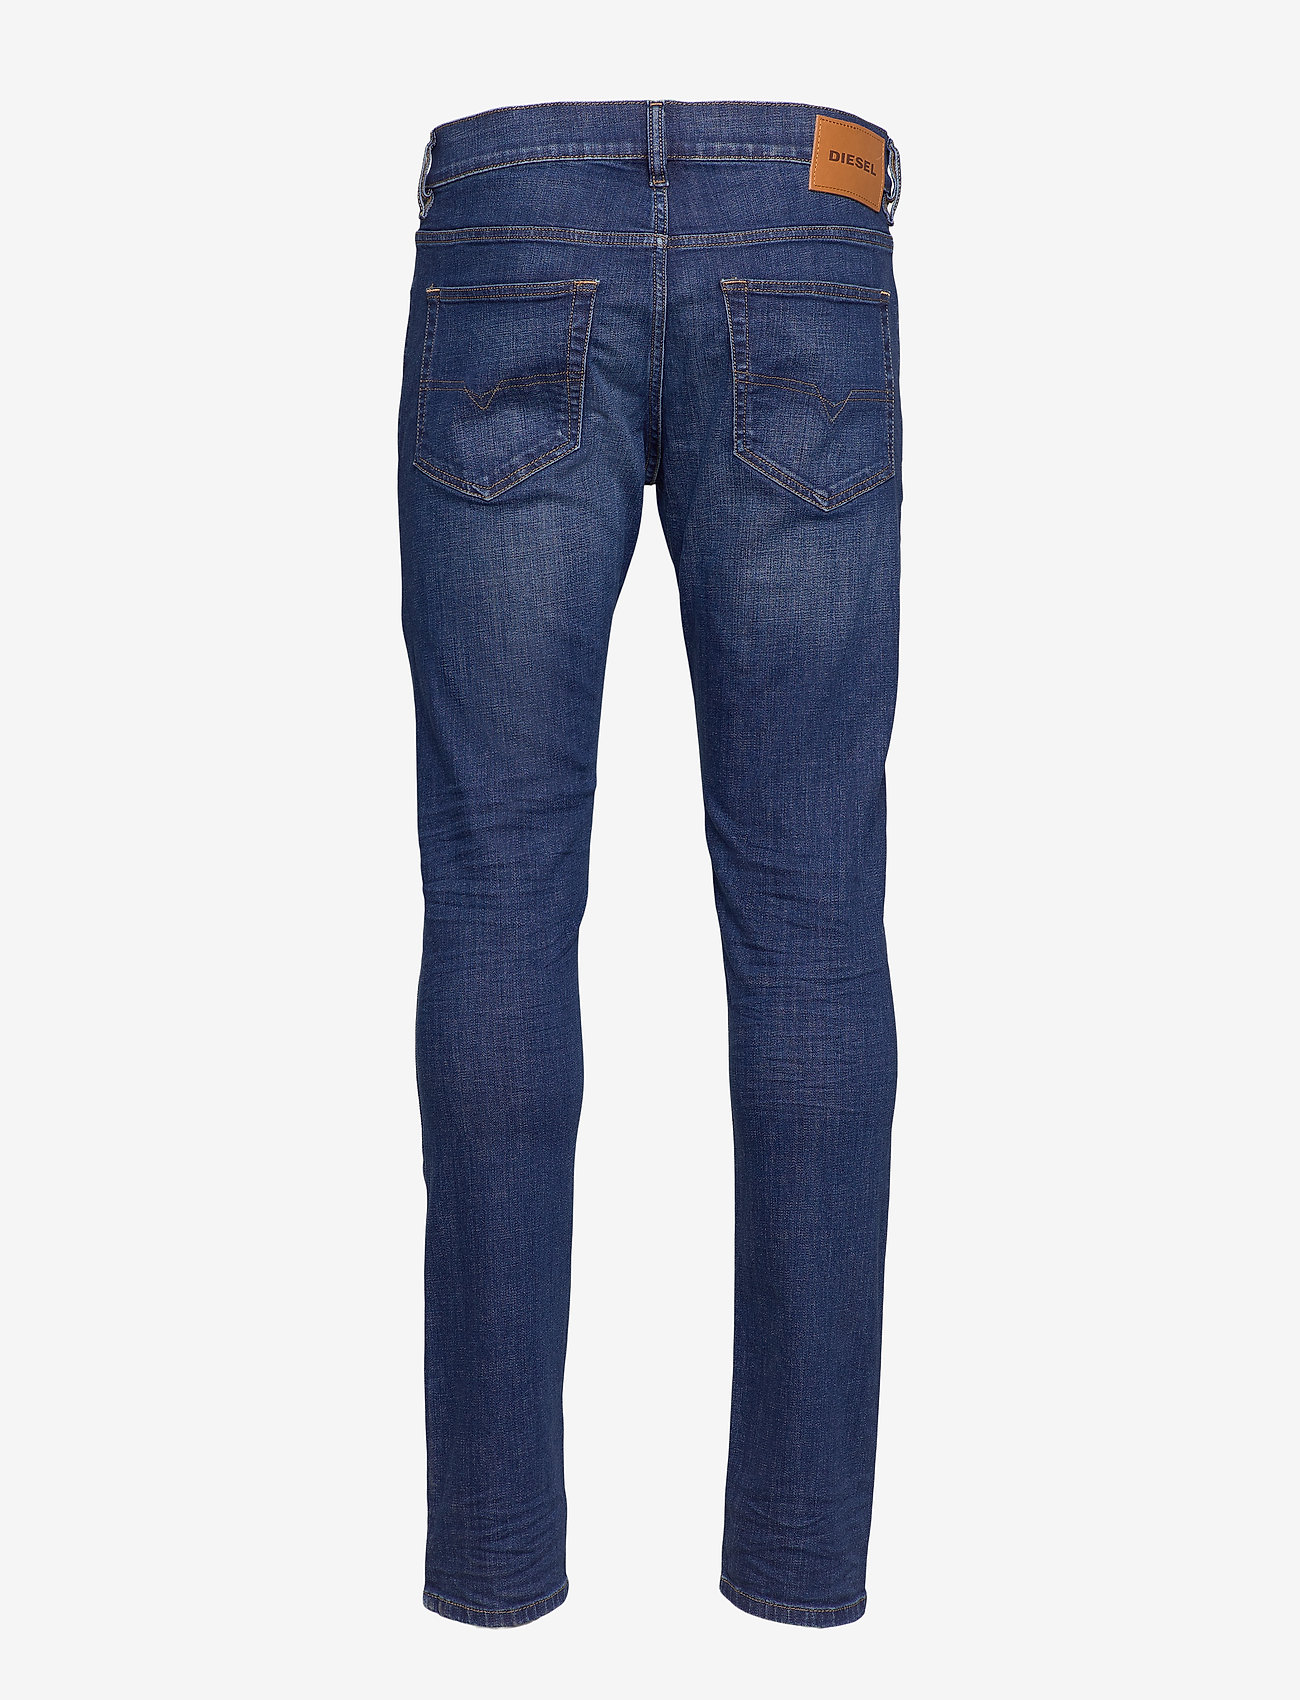 Diesel Men - D-LUSTER L.32 TROUSERS - slim jeans - denim - 1